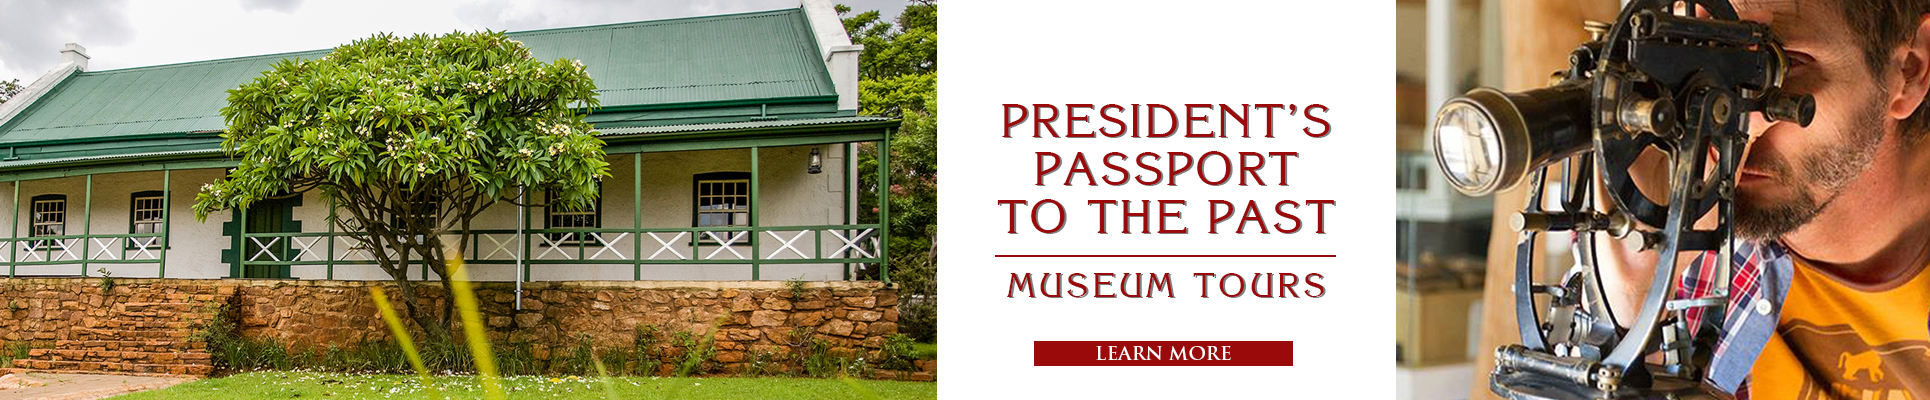 Paul-Kruger-Country-House-Museum-Tours